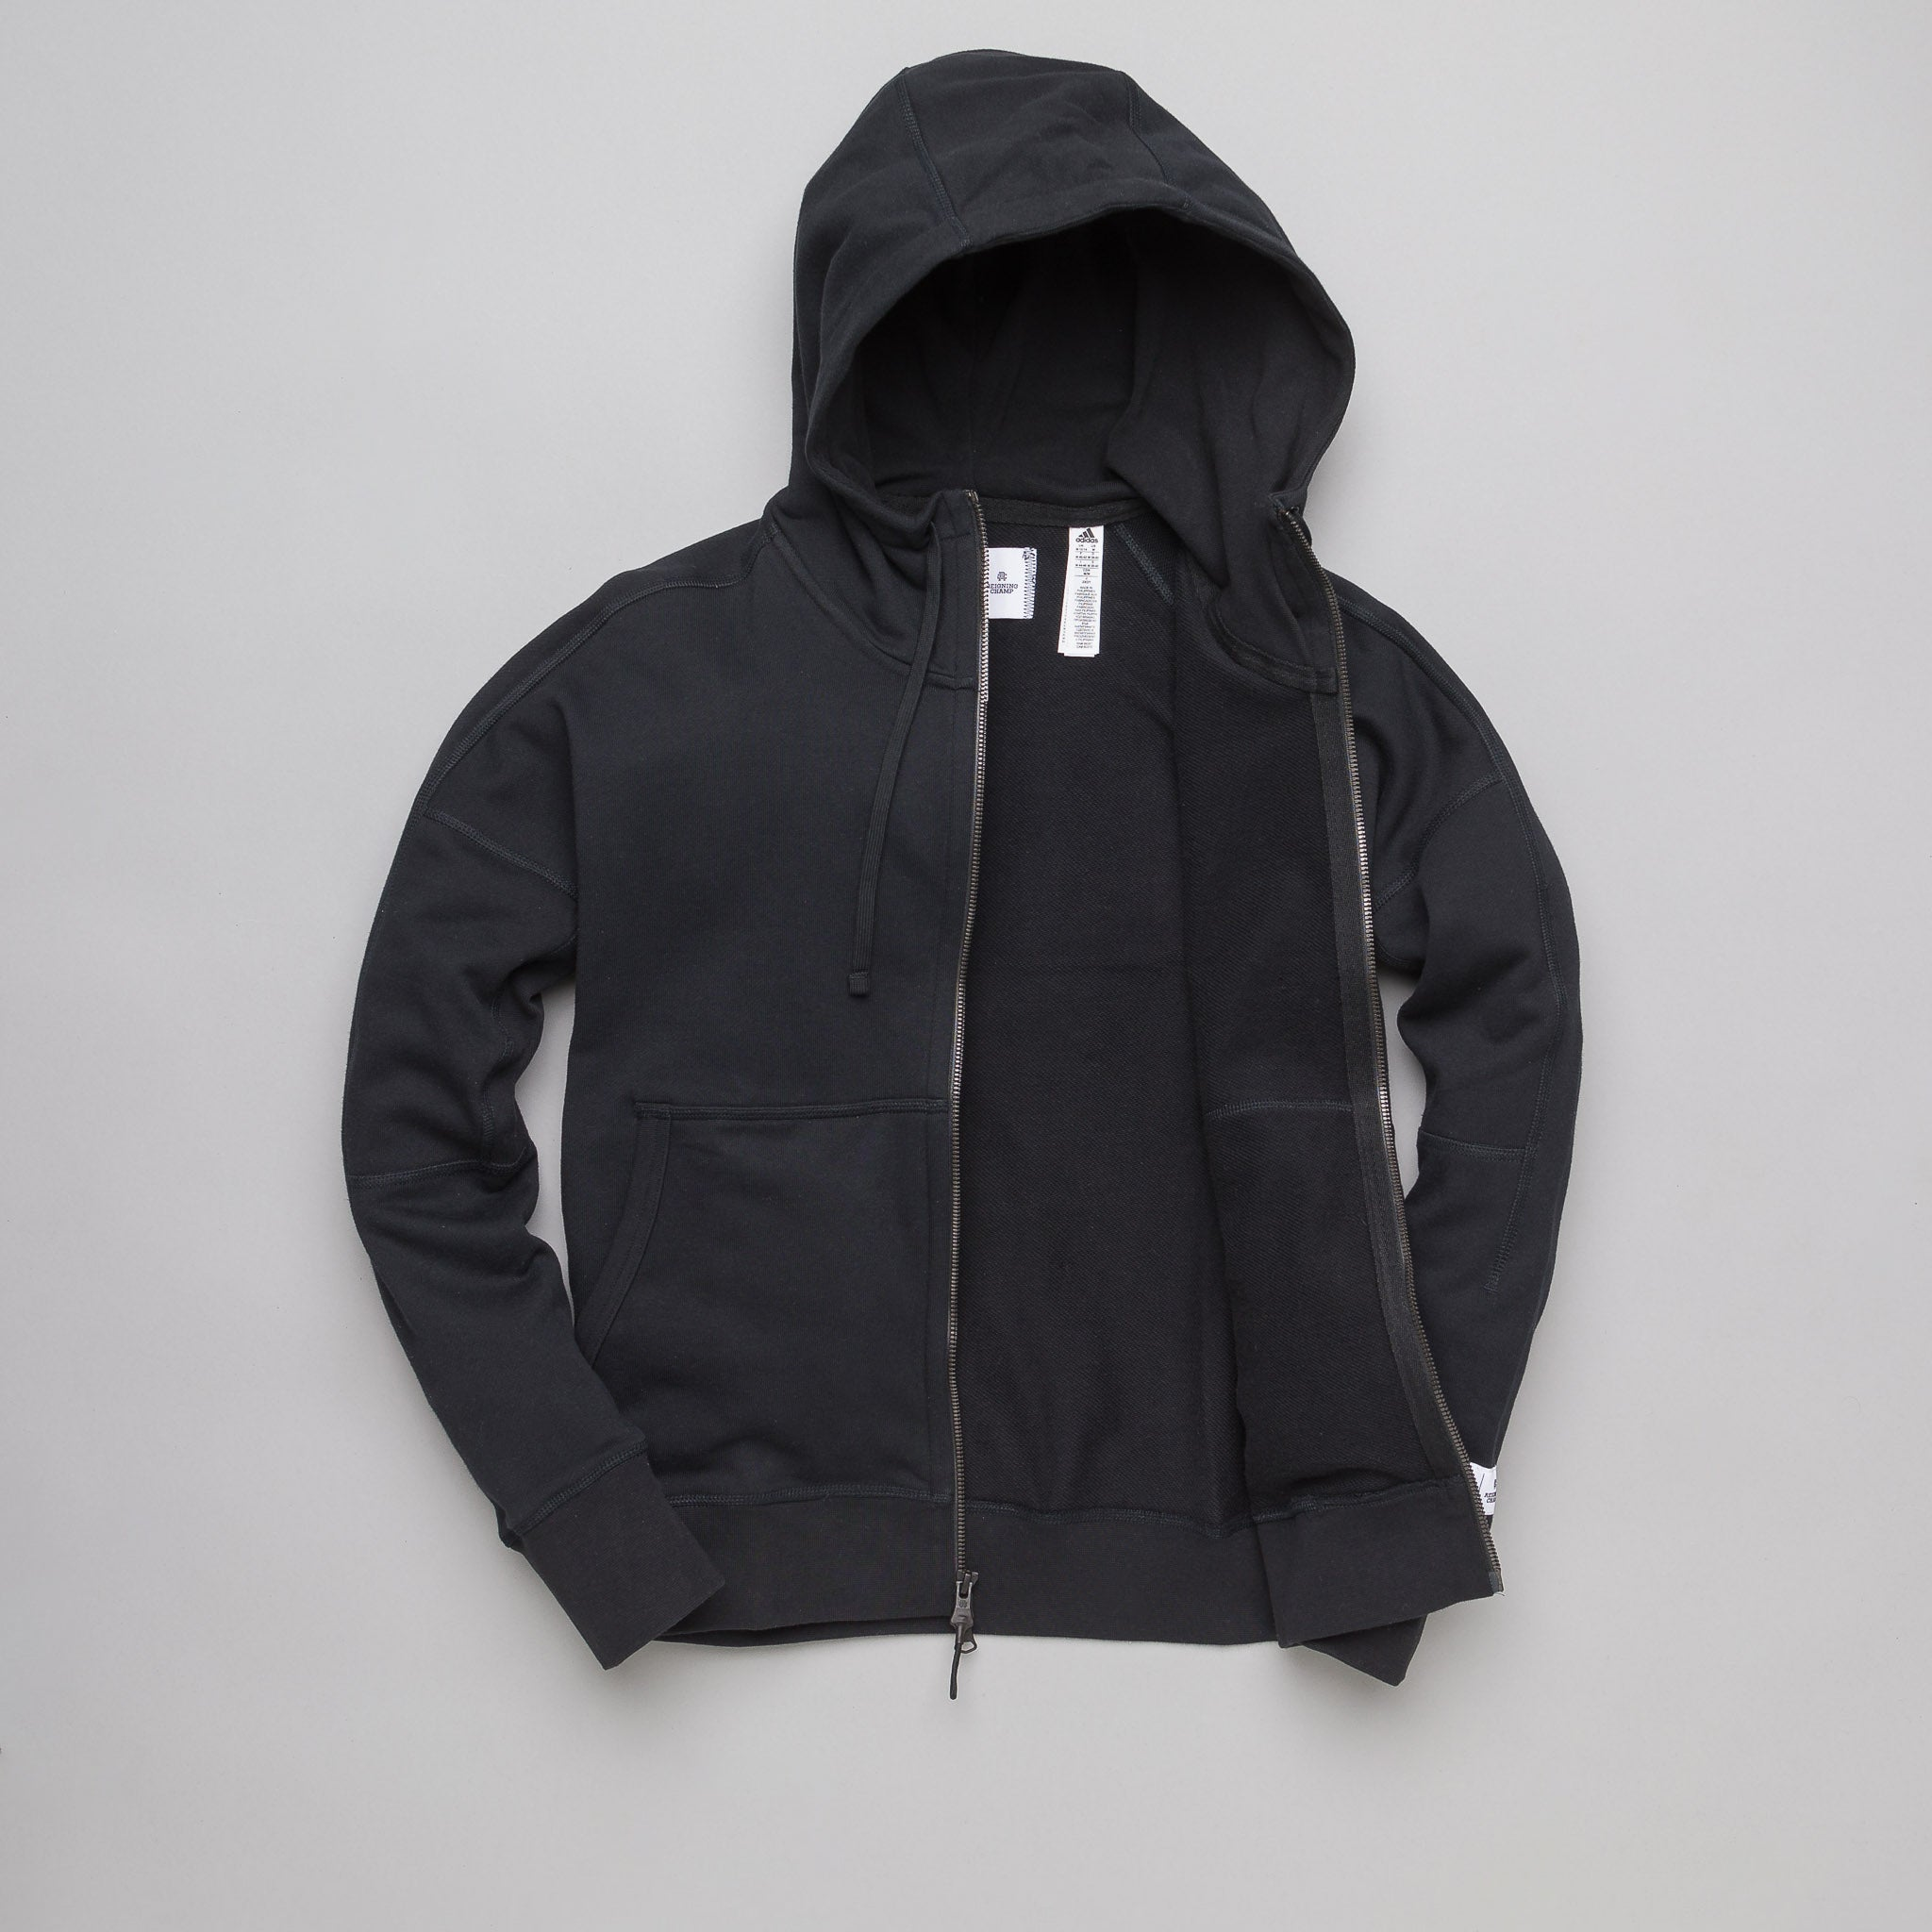 x Reigning Champ Women's FTFZ Hoody in Black